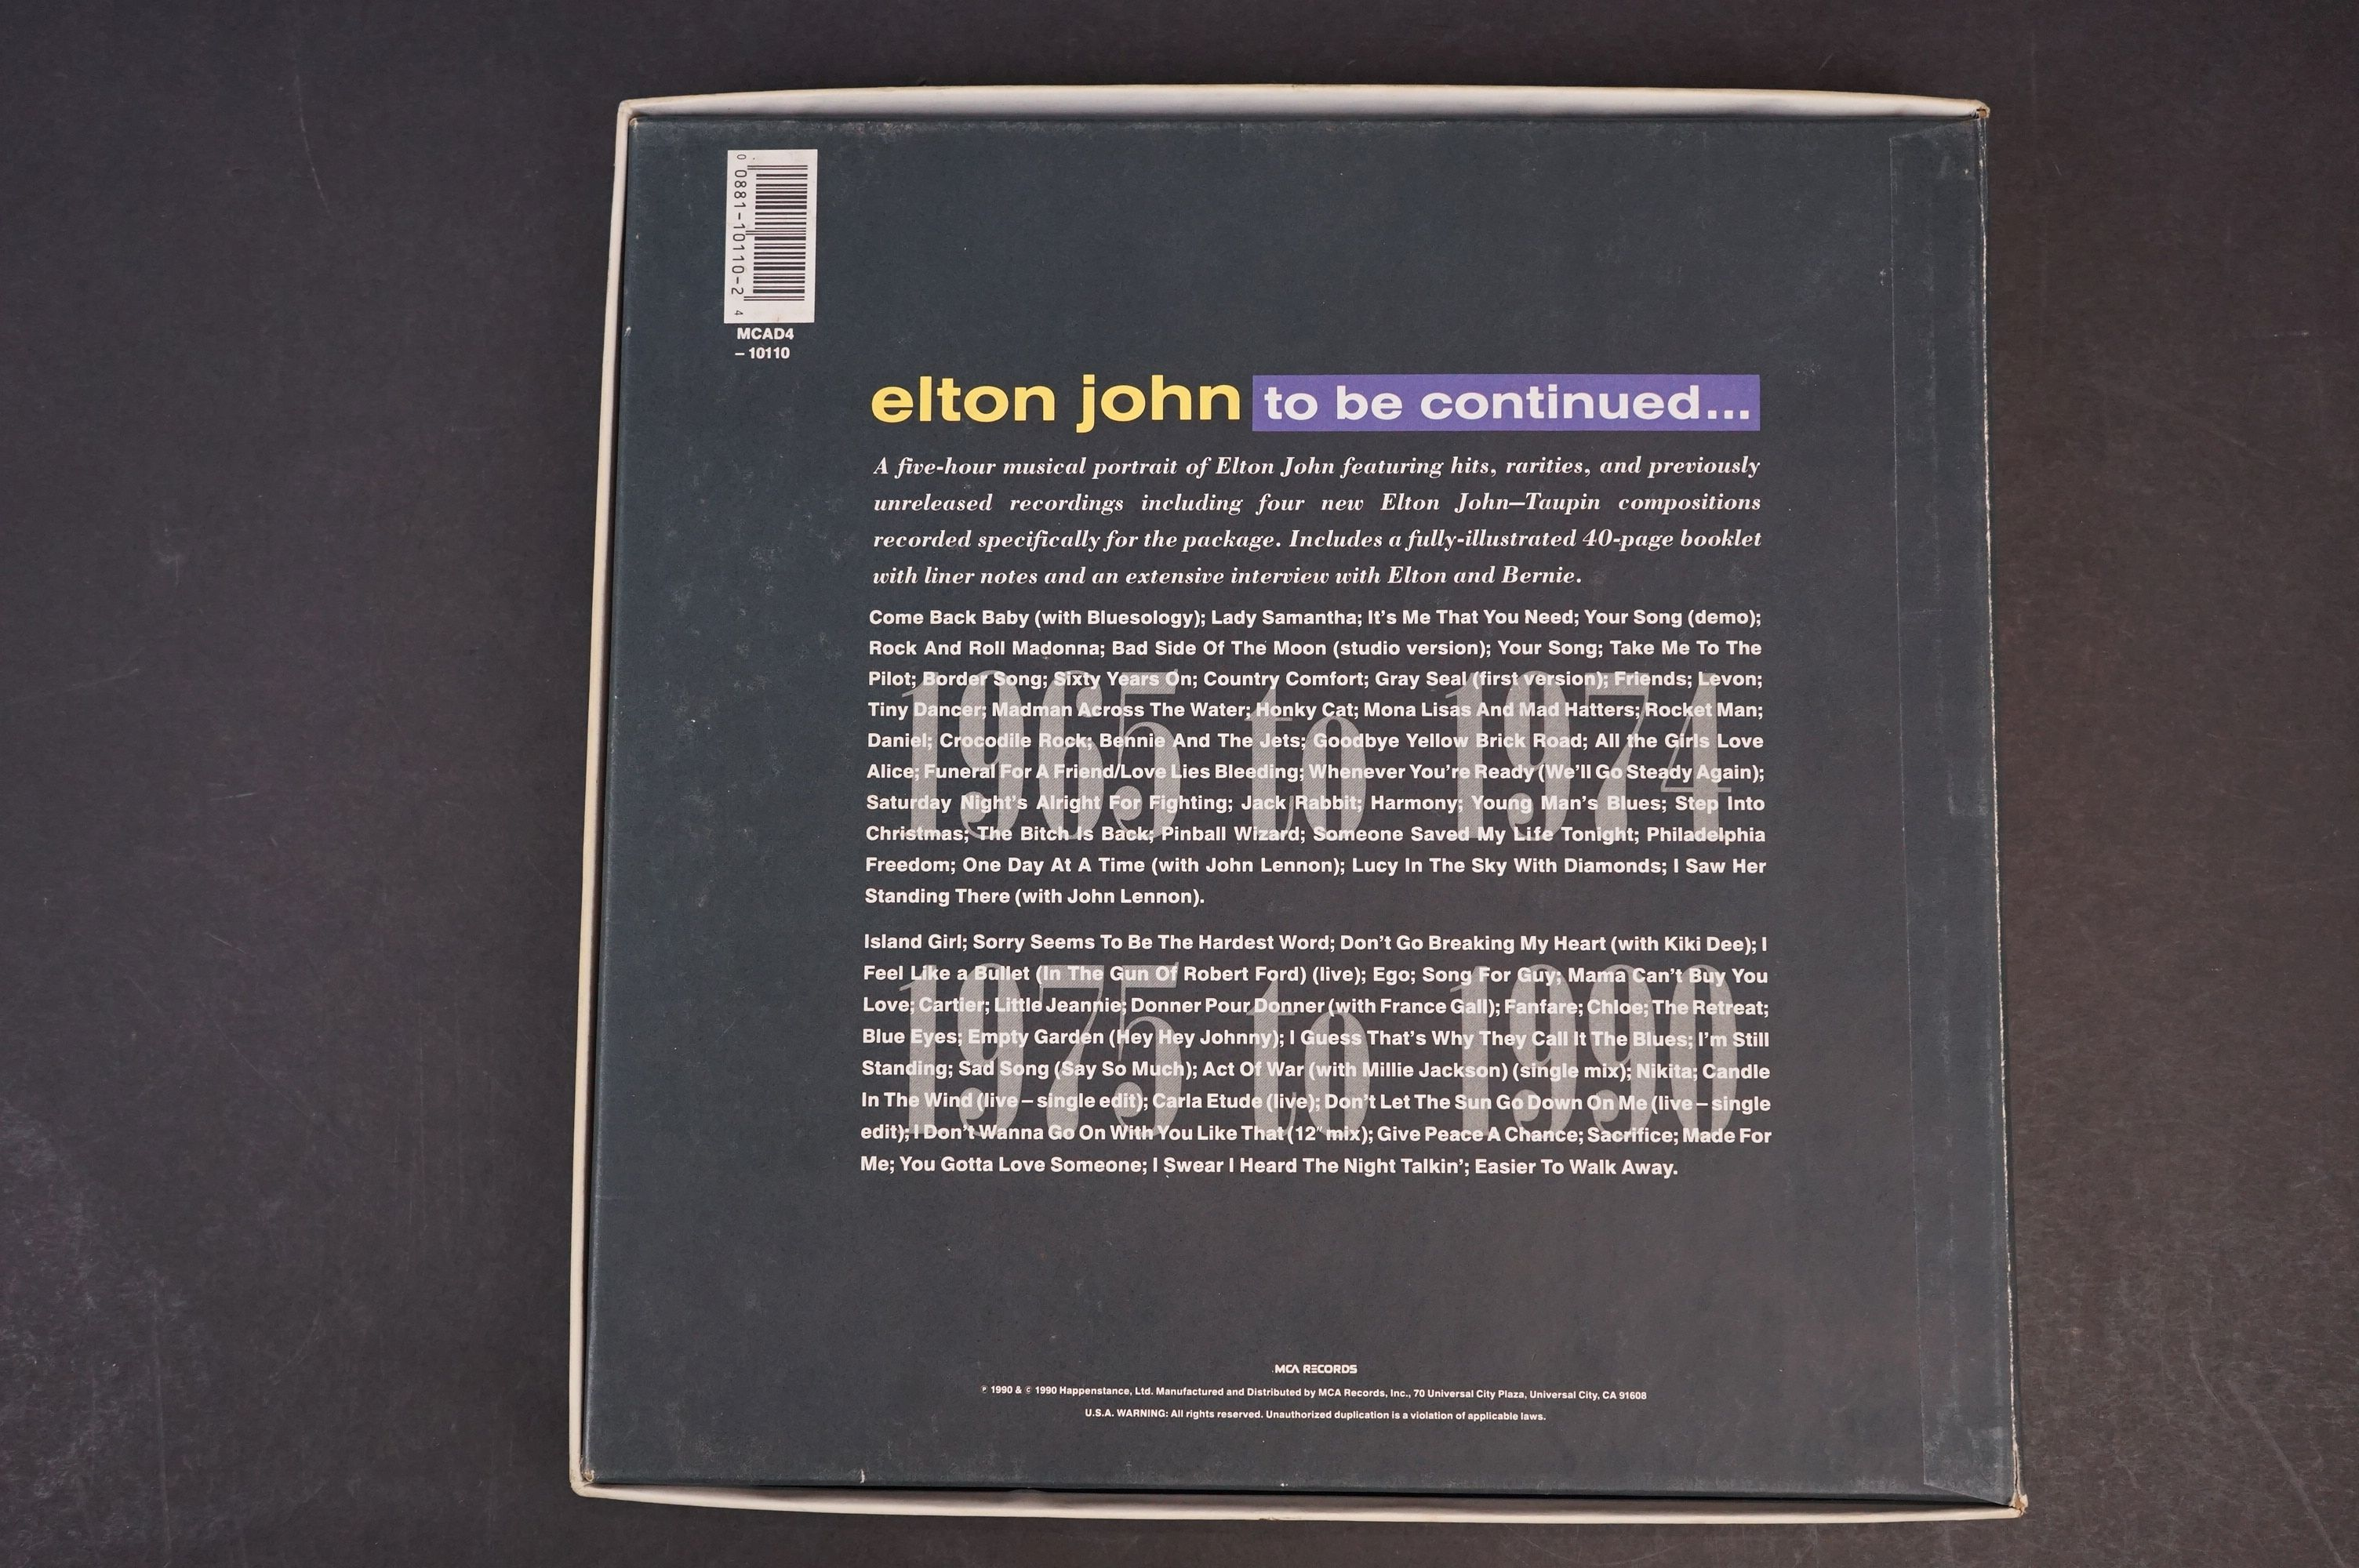 CD - Elton John To Be Continued Box Set MCAD4 - 10110 complete and vg - Image 6 of 6